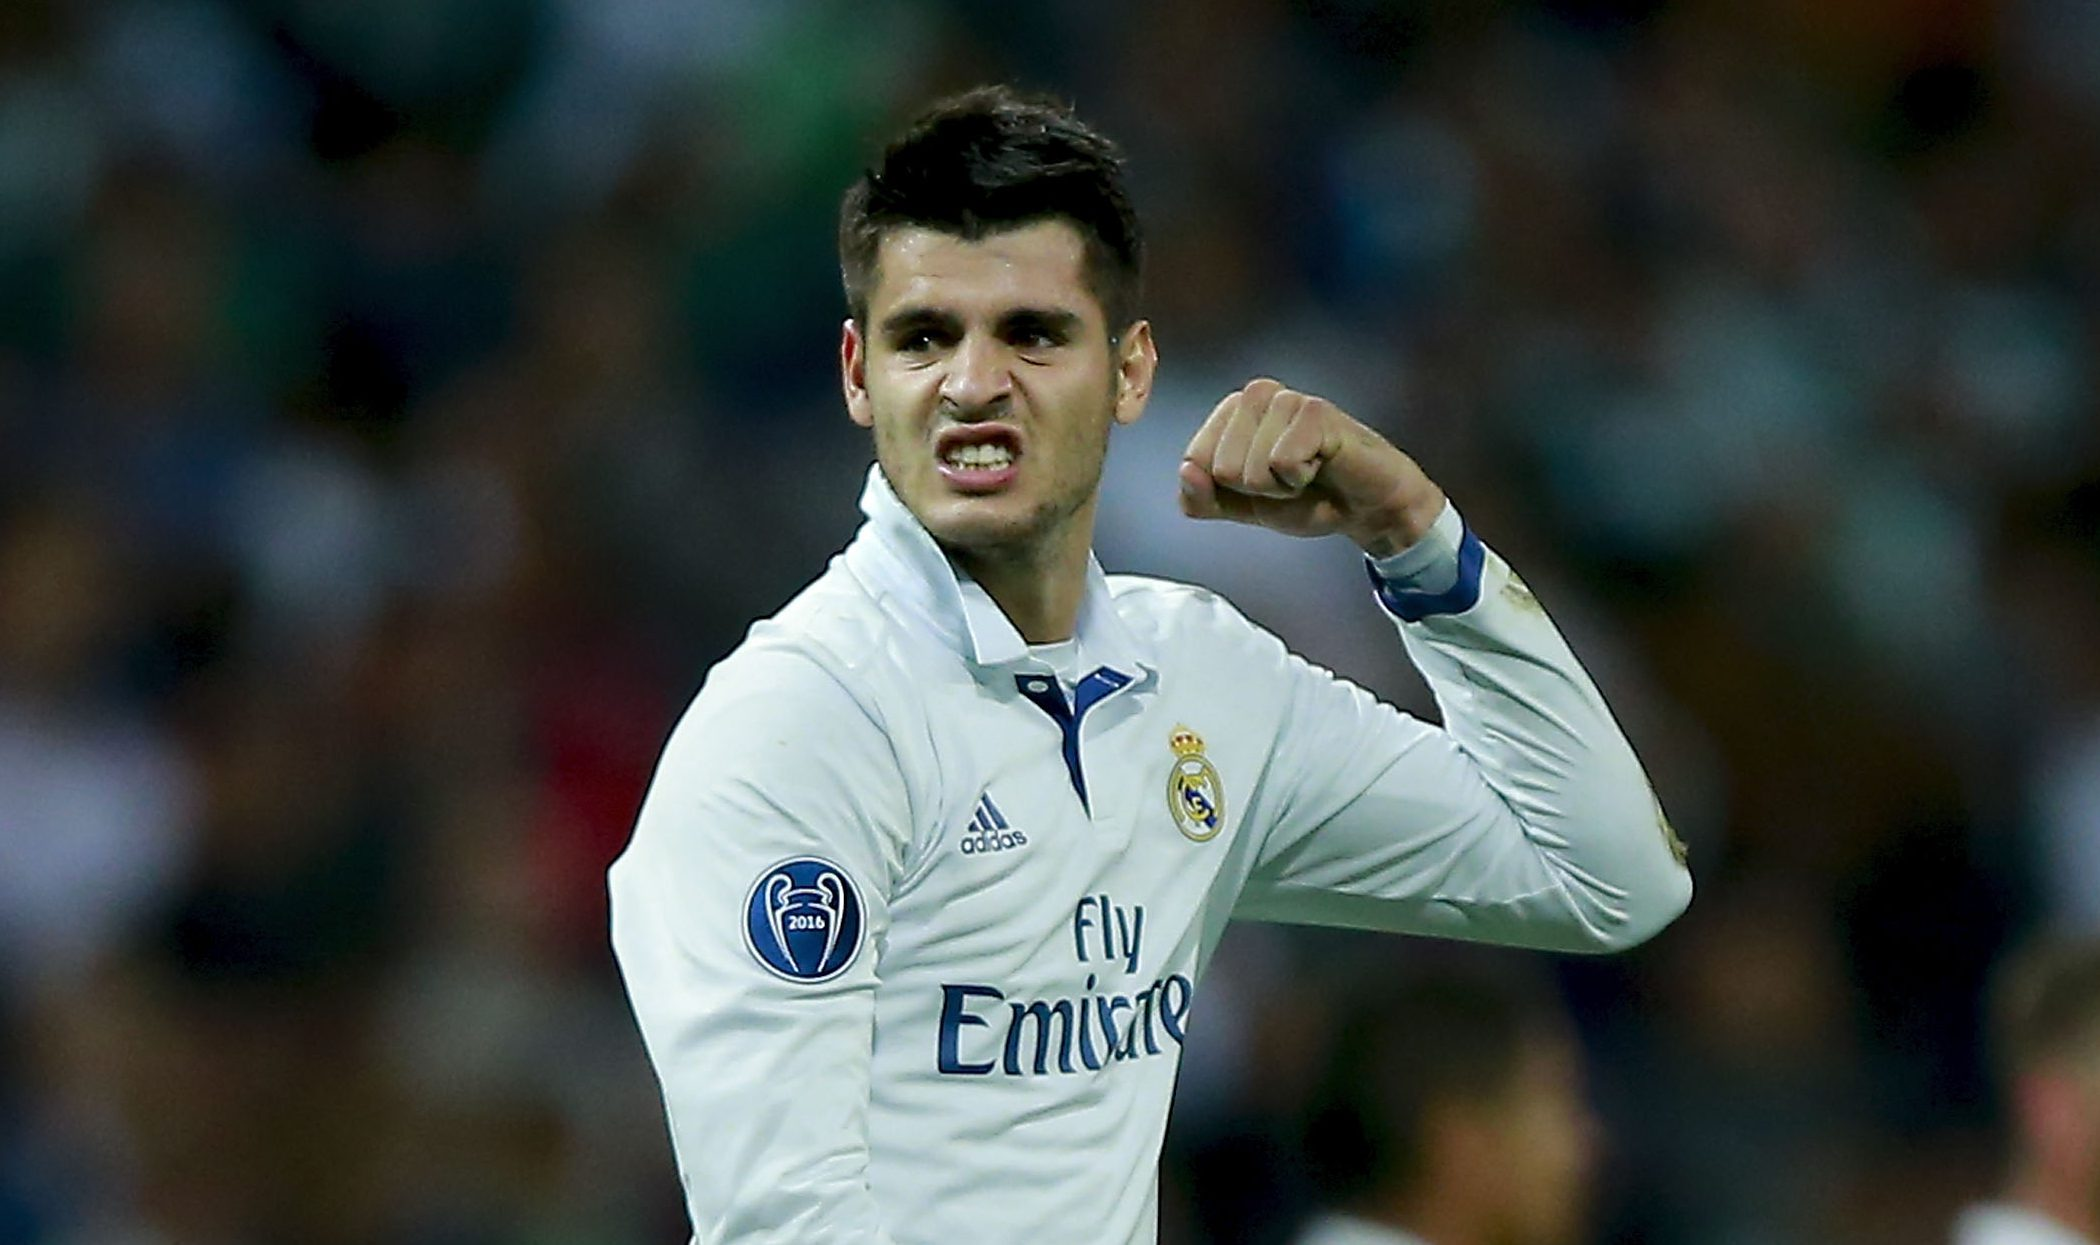 MADRID, SPAIN - SEPTEMBER 14: Alvaro Morata of Real Madrid CF celebrates after winning the UEFA Champions League group stage match between Real Madrid CF and Sporting Clube de Portugal at Santiago Bernabeu stadium on September 14, 2016 in Madrid, Spain. (Photo by Gonzalo Arroyo Moreno/Getty Images)